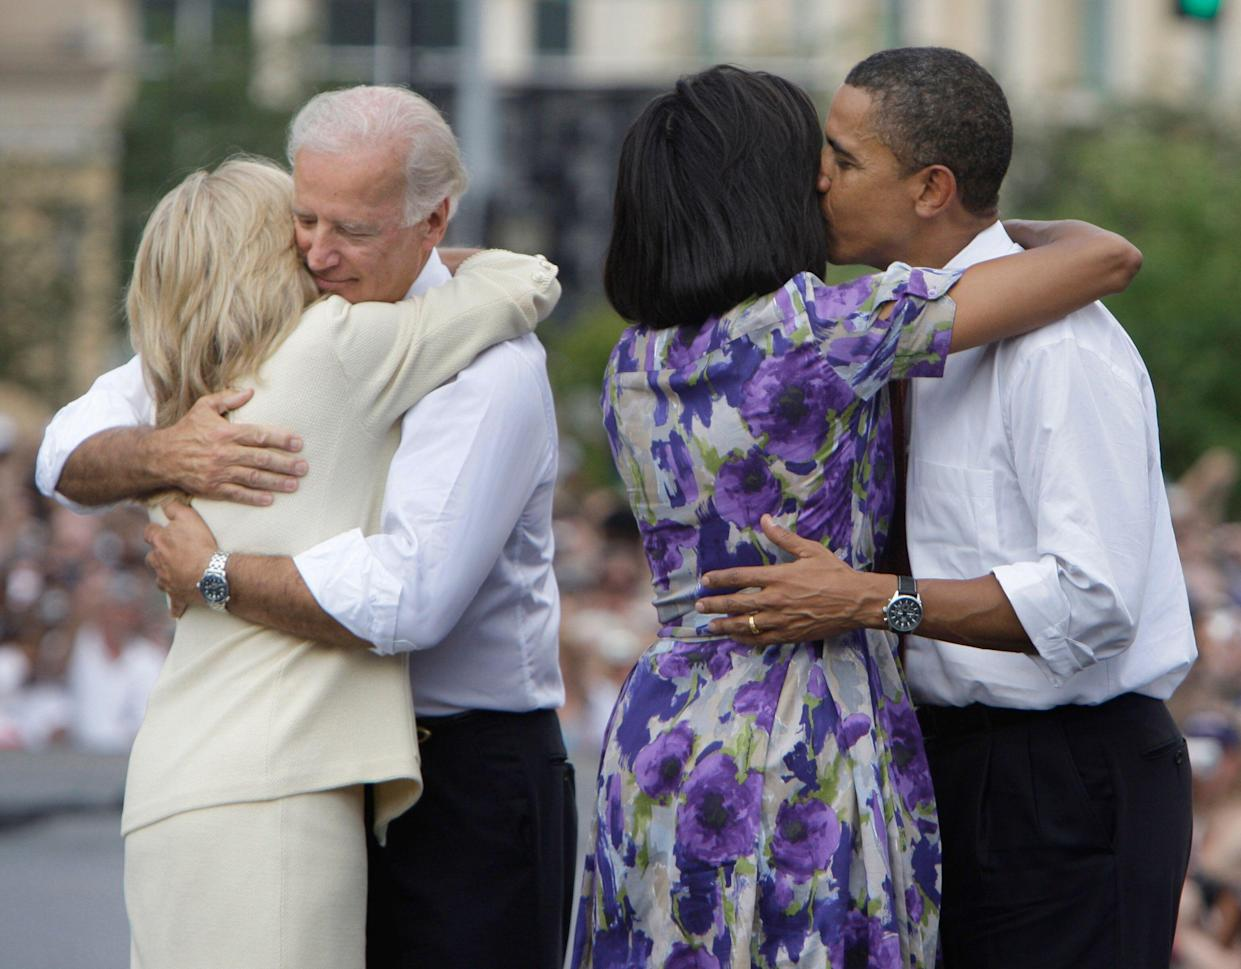 Then presidential candidate Sen. Barack Obama and his running mate Sen. Joe Biden with their wives Michelle Obama and Jill Biden at a campaign stop Springfield, Ill., August 2008. (Photo: M. Spencer Green/AP)